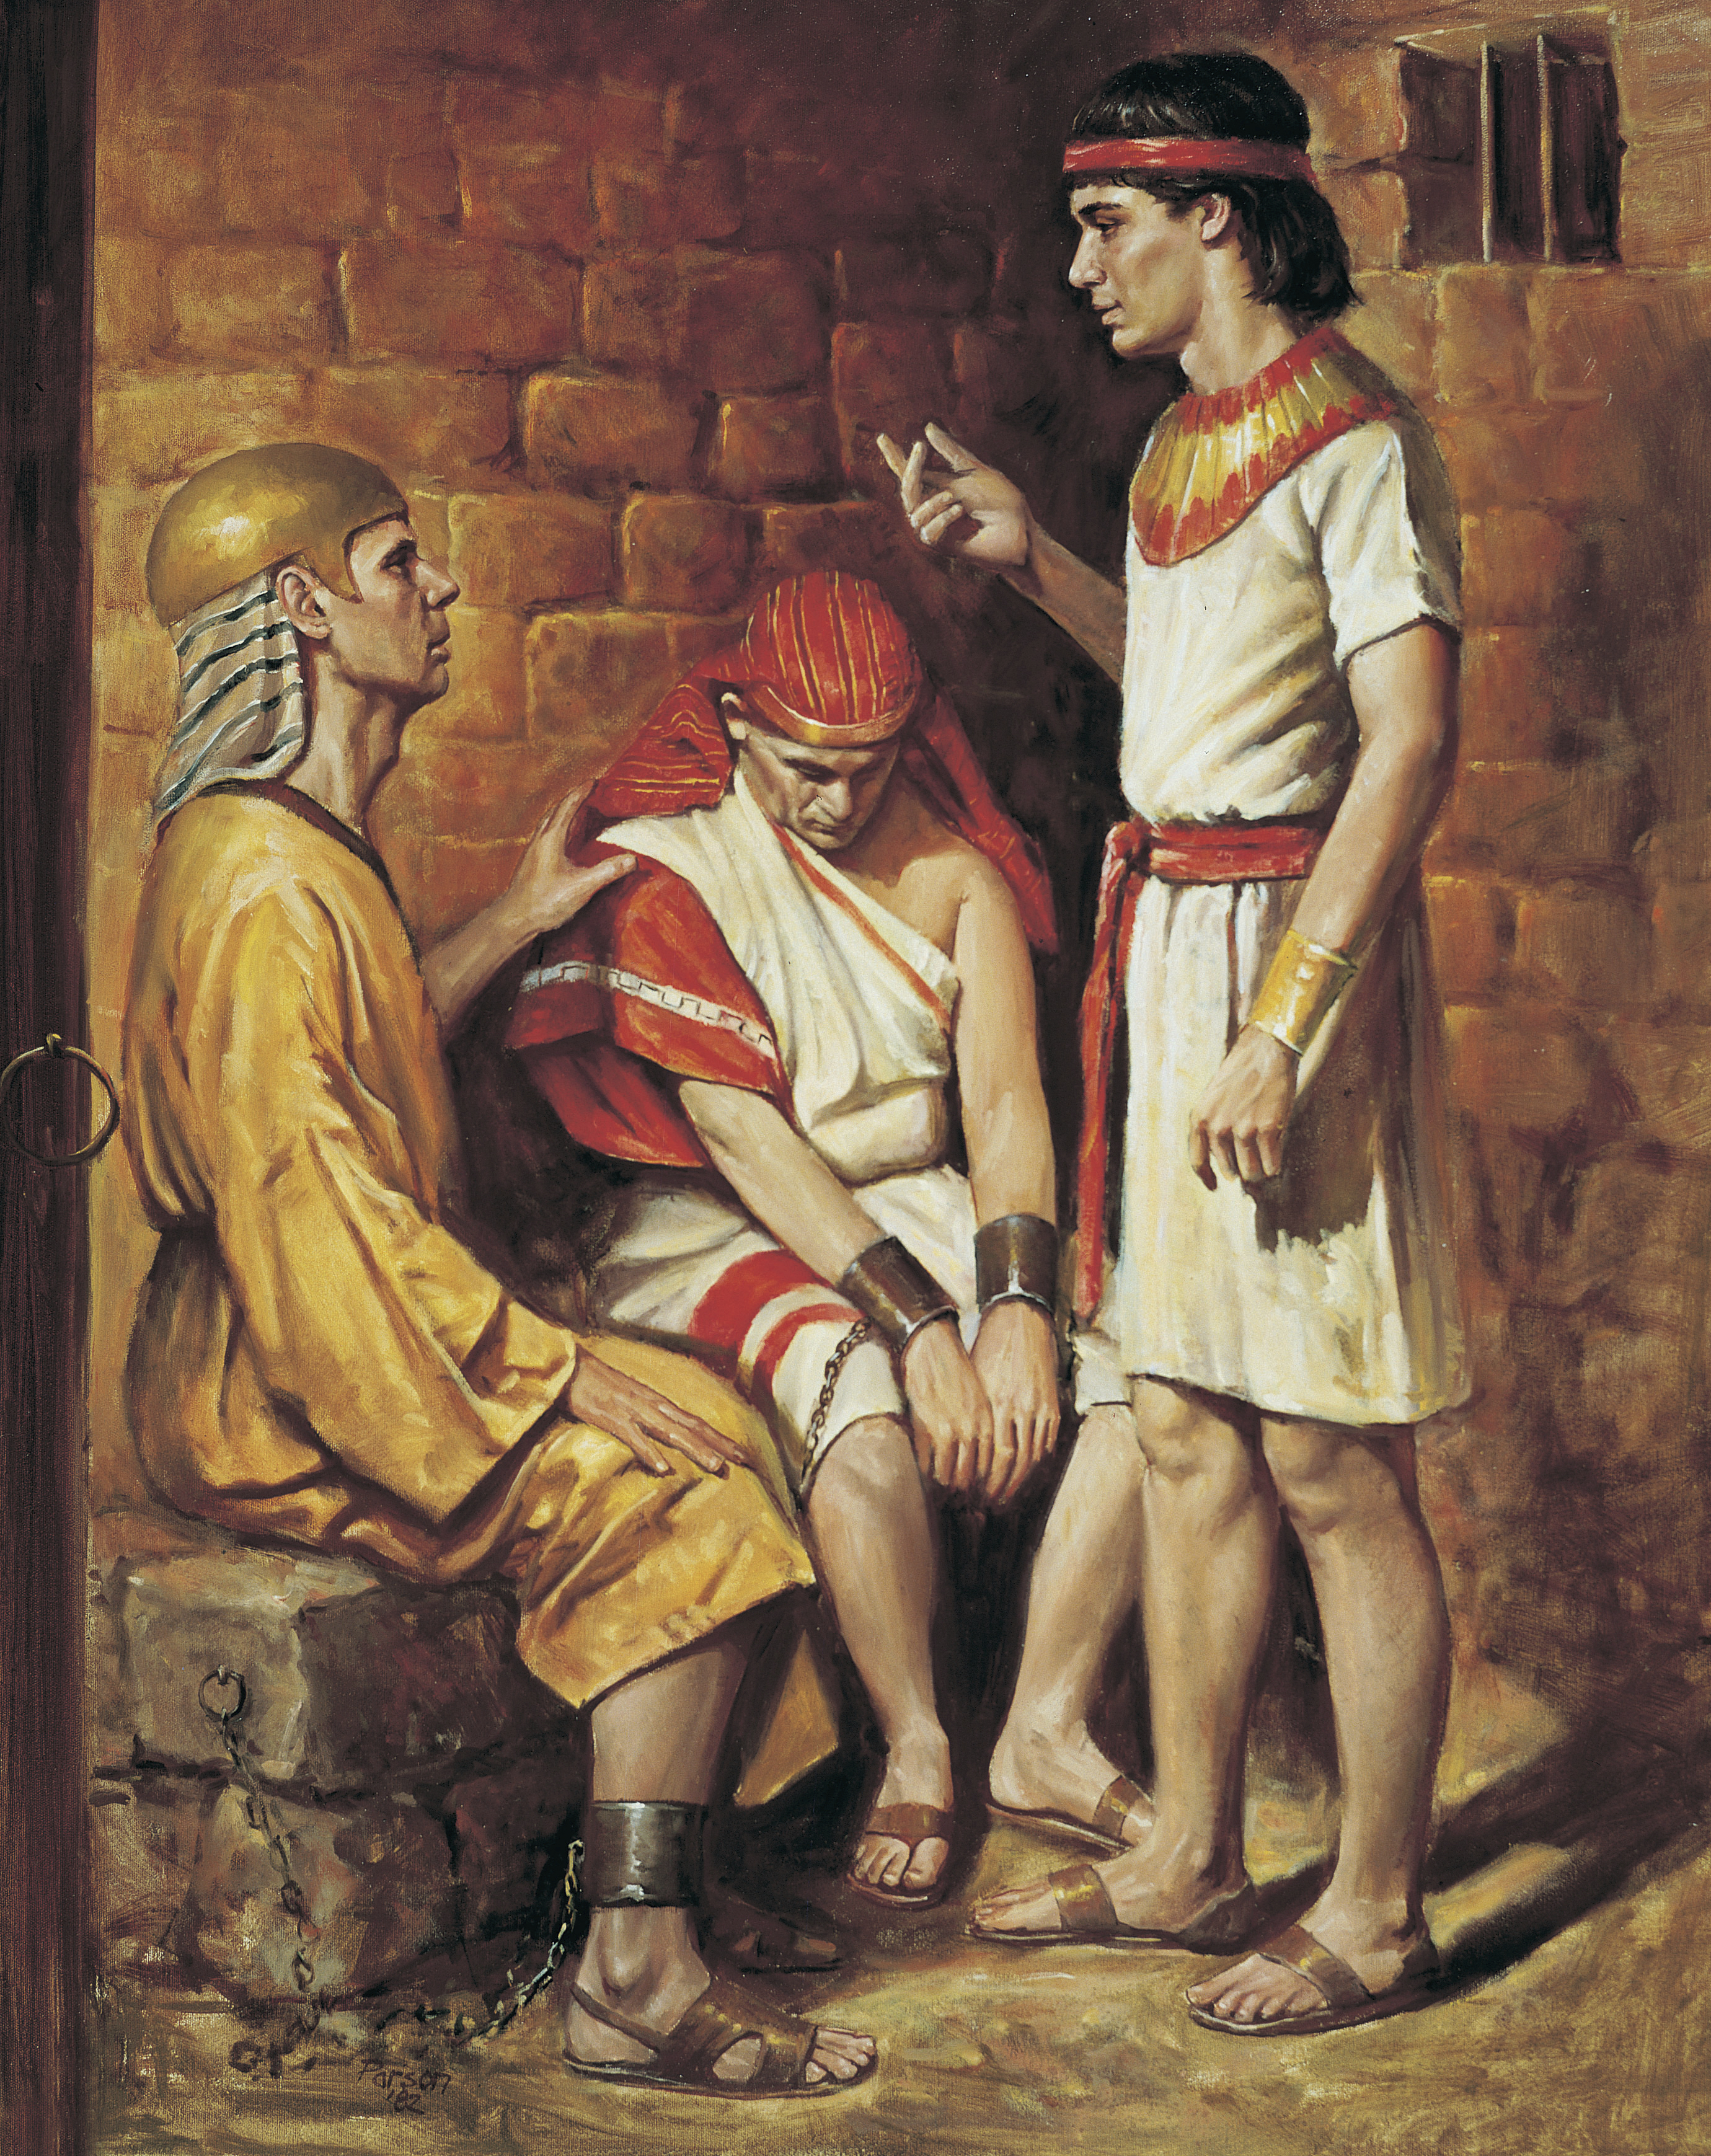 Joseph and the Butler and Baker (Joseph Interprets the Pharaoh's Servants' Dreams, by Del Parson; Primary manual 6-19